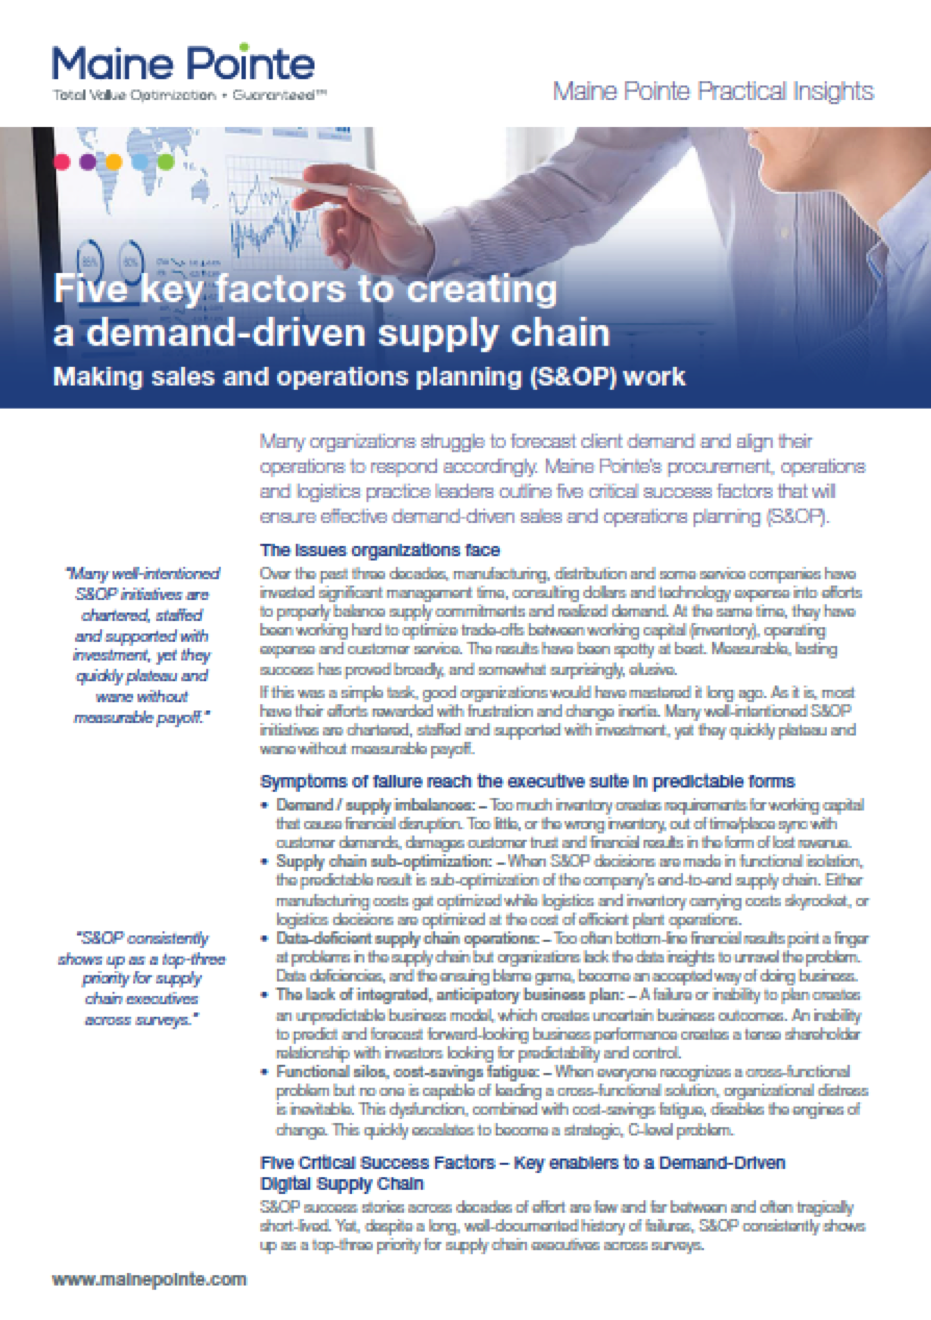 Five key factors to creatind a demand-driven supply chain thumbnail